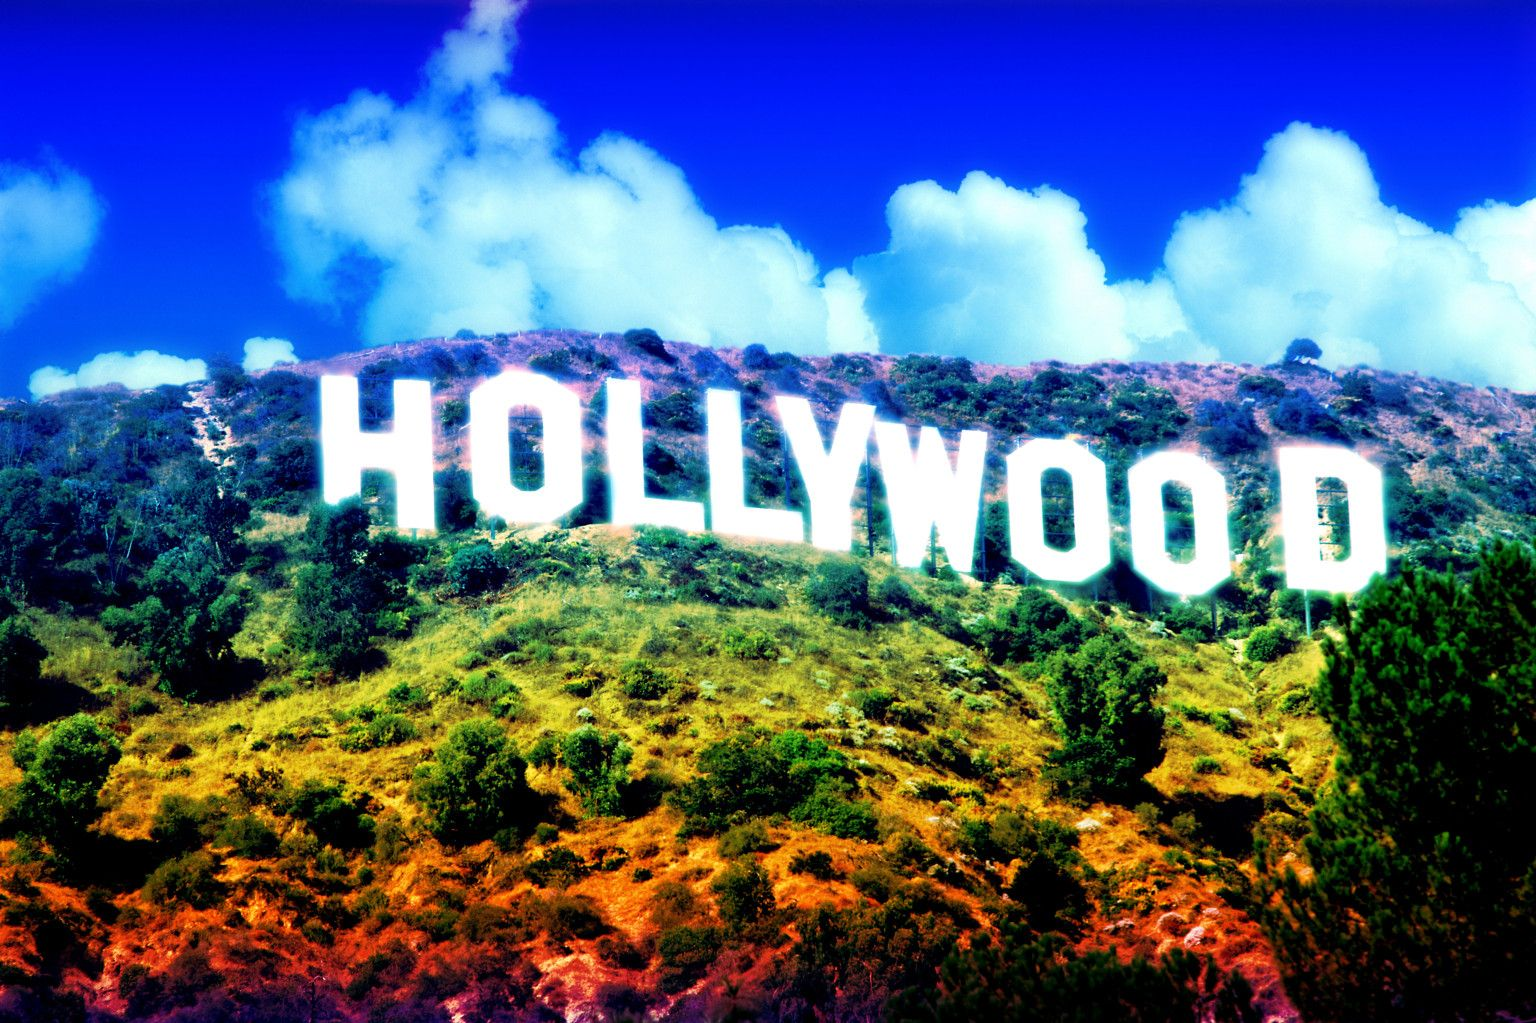 Hollywood Sign Wallpapers 1536x1023